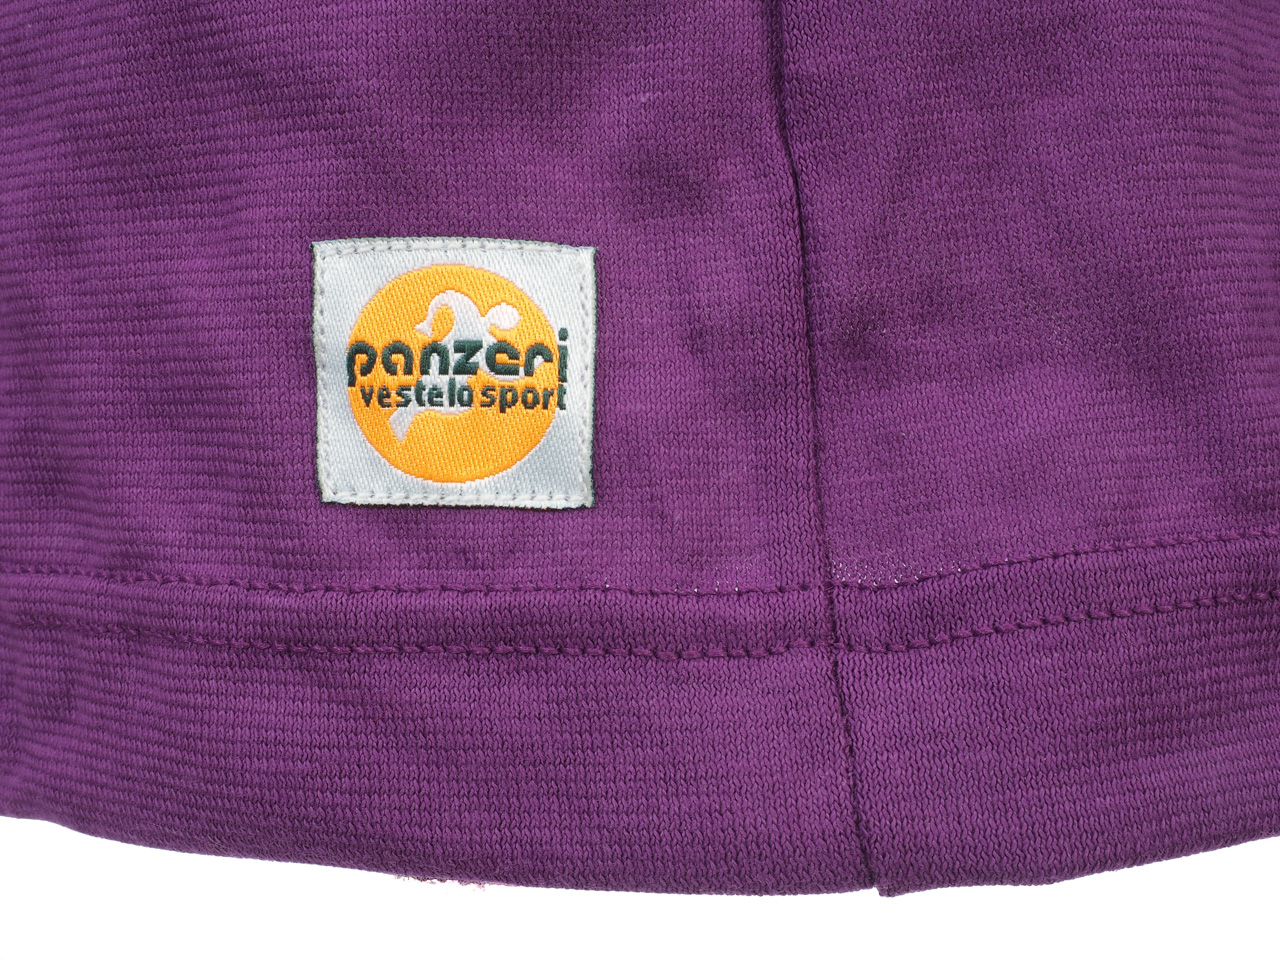 Shorts-Multi-Panzeri-Plain-a-Purple-Jersey-Shorts-Purple-30929-New thumbnail 4